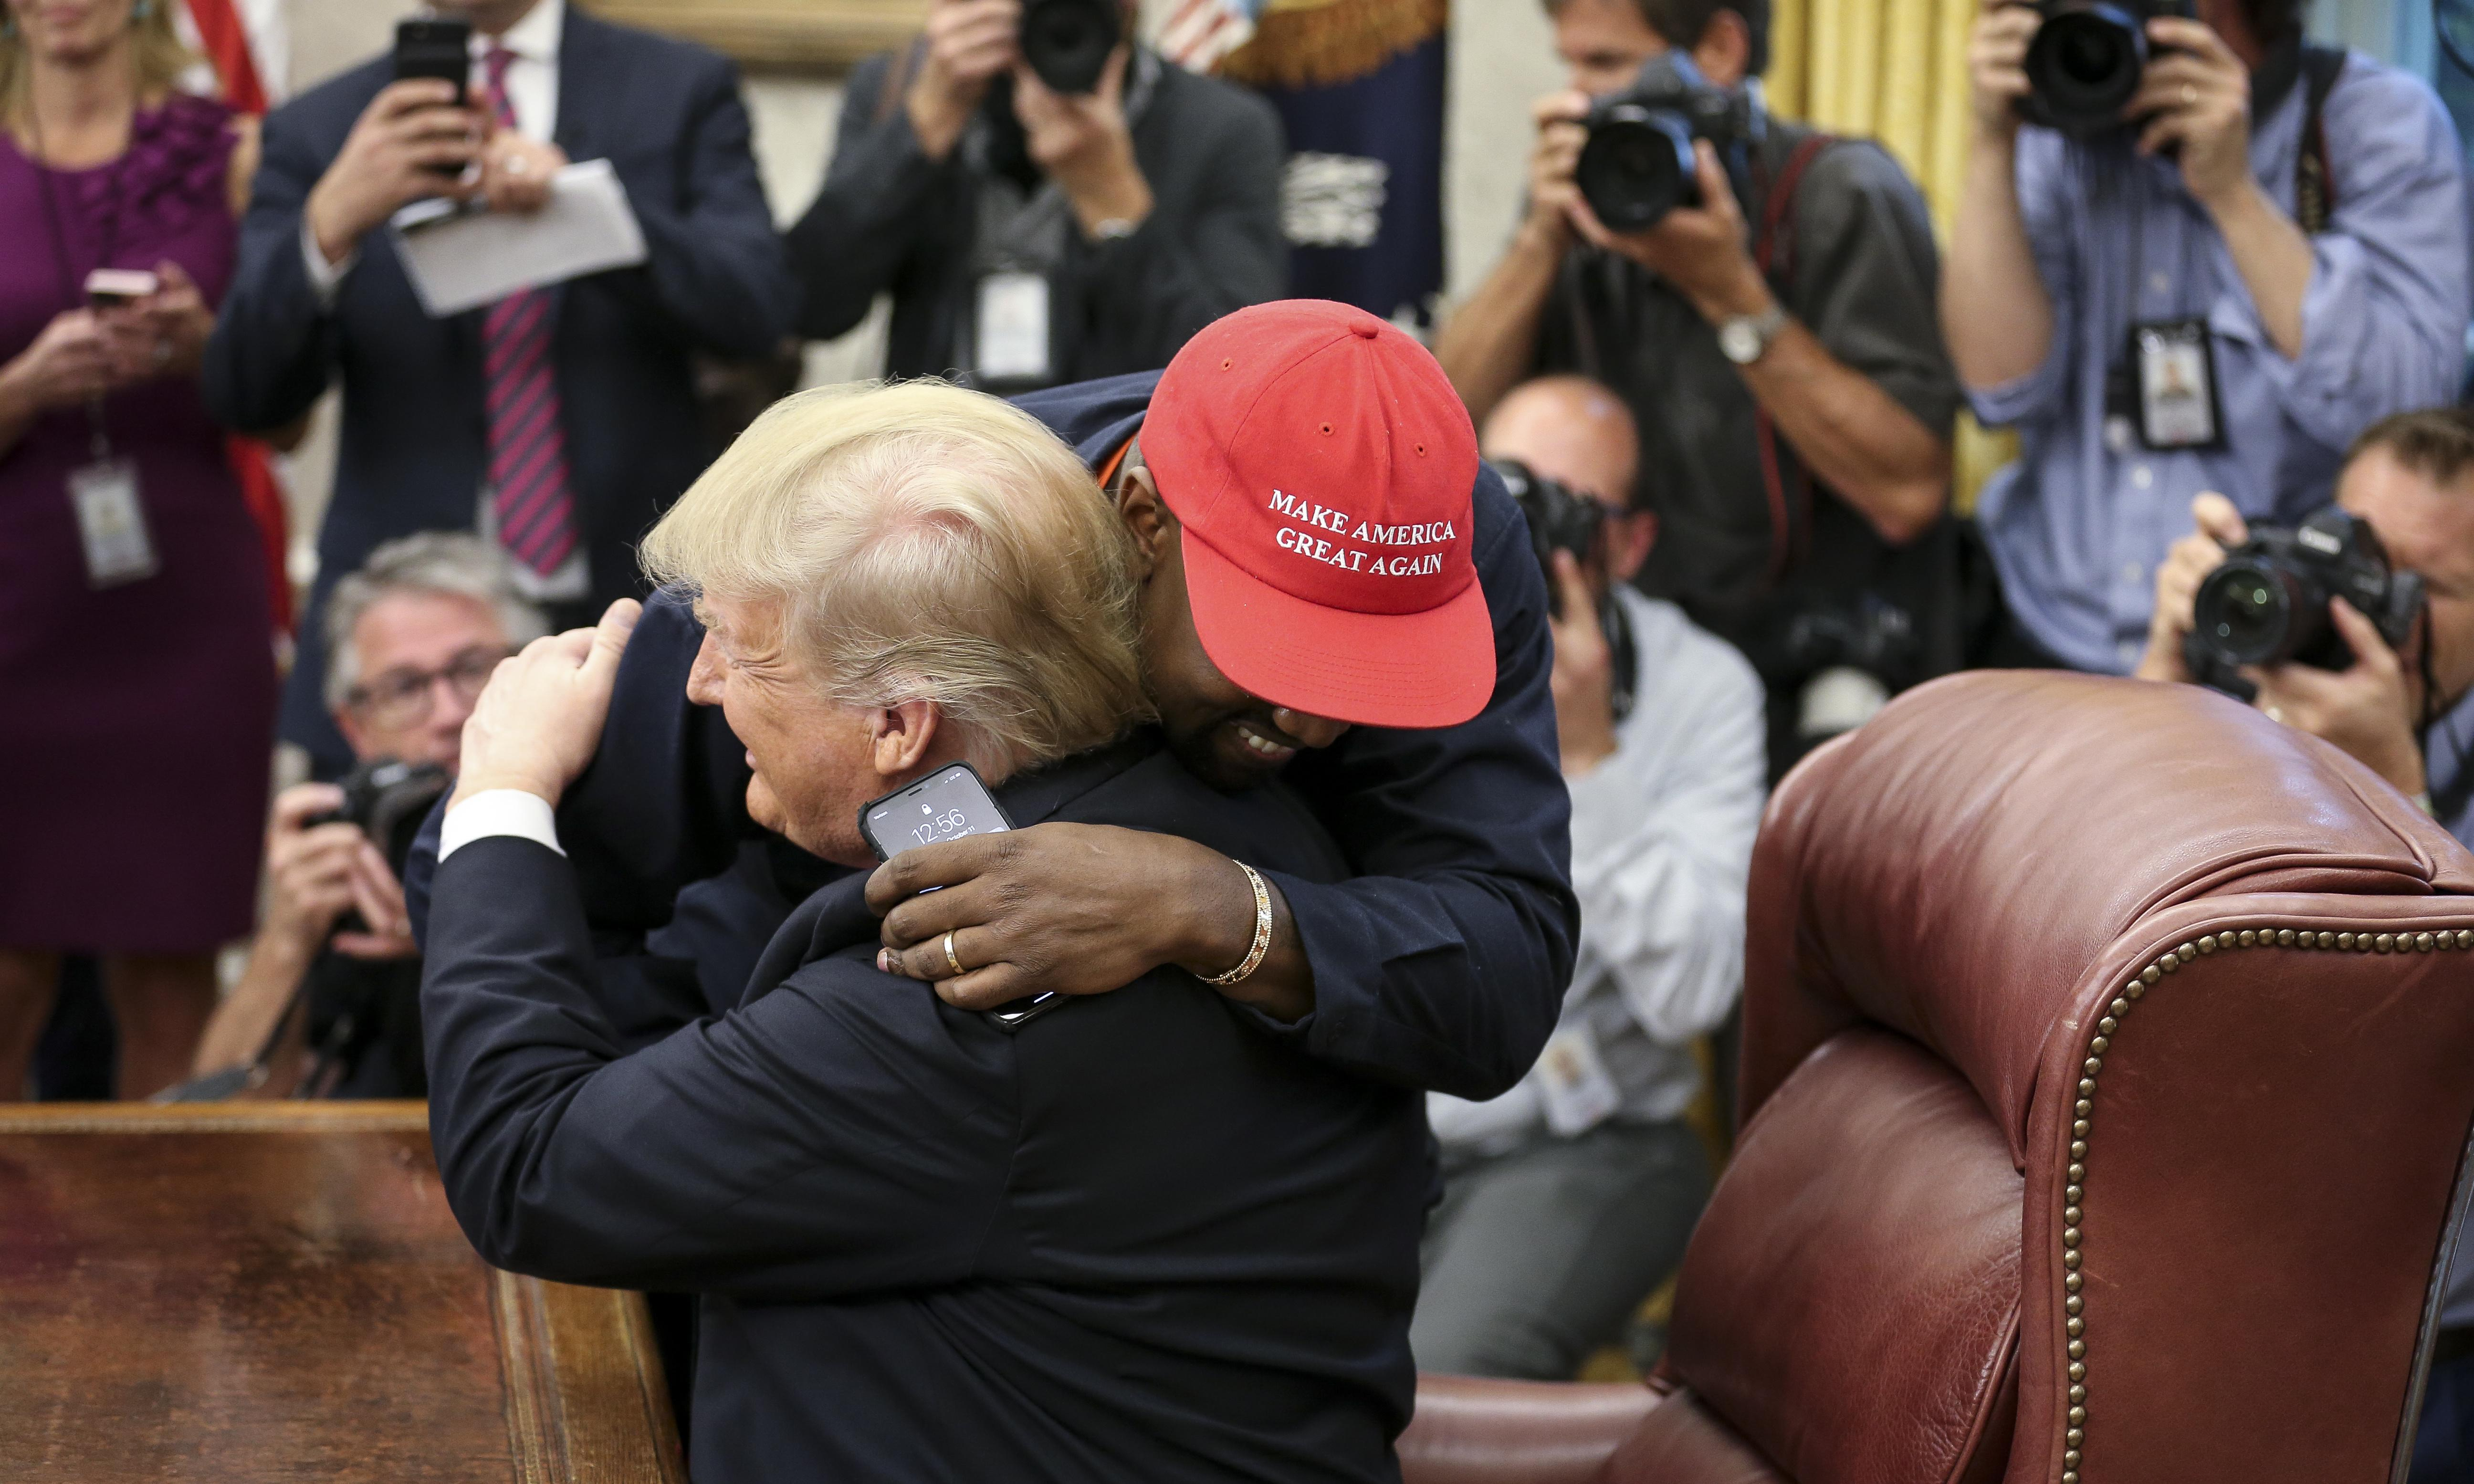 Does Kanye West deserve to be called an Uncle Tom?